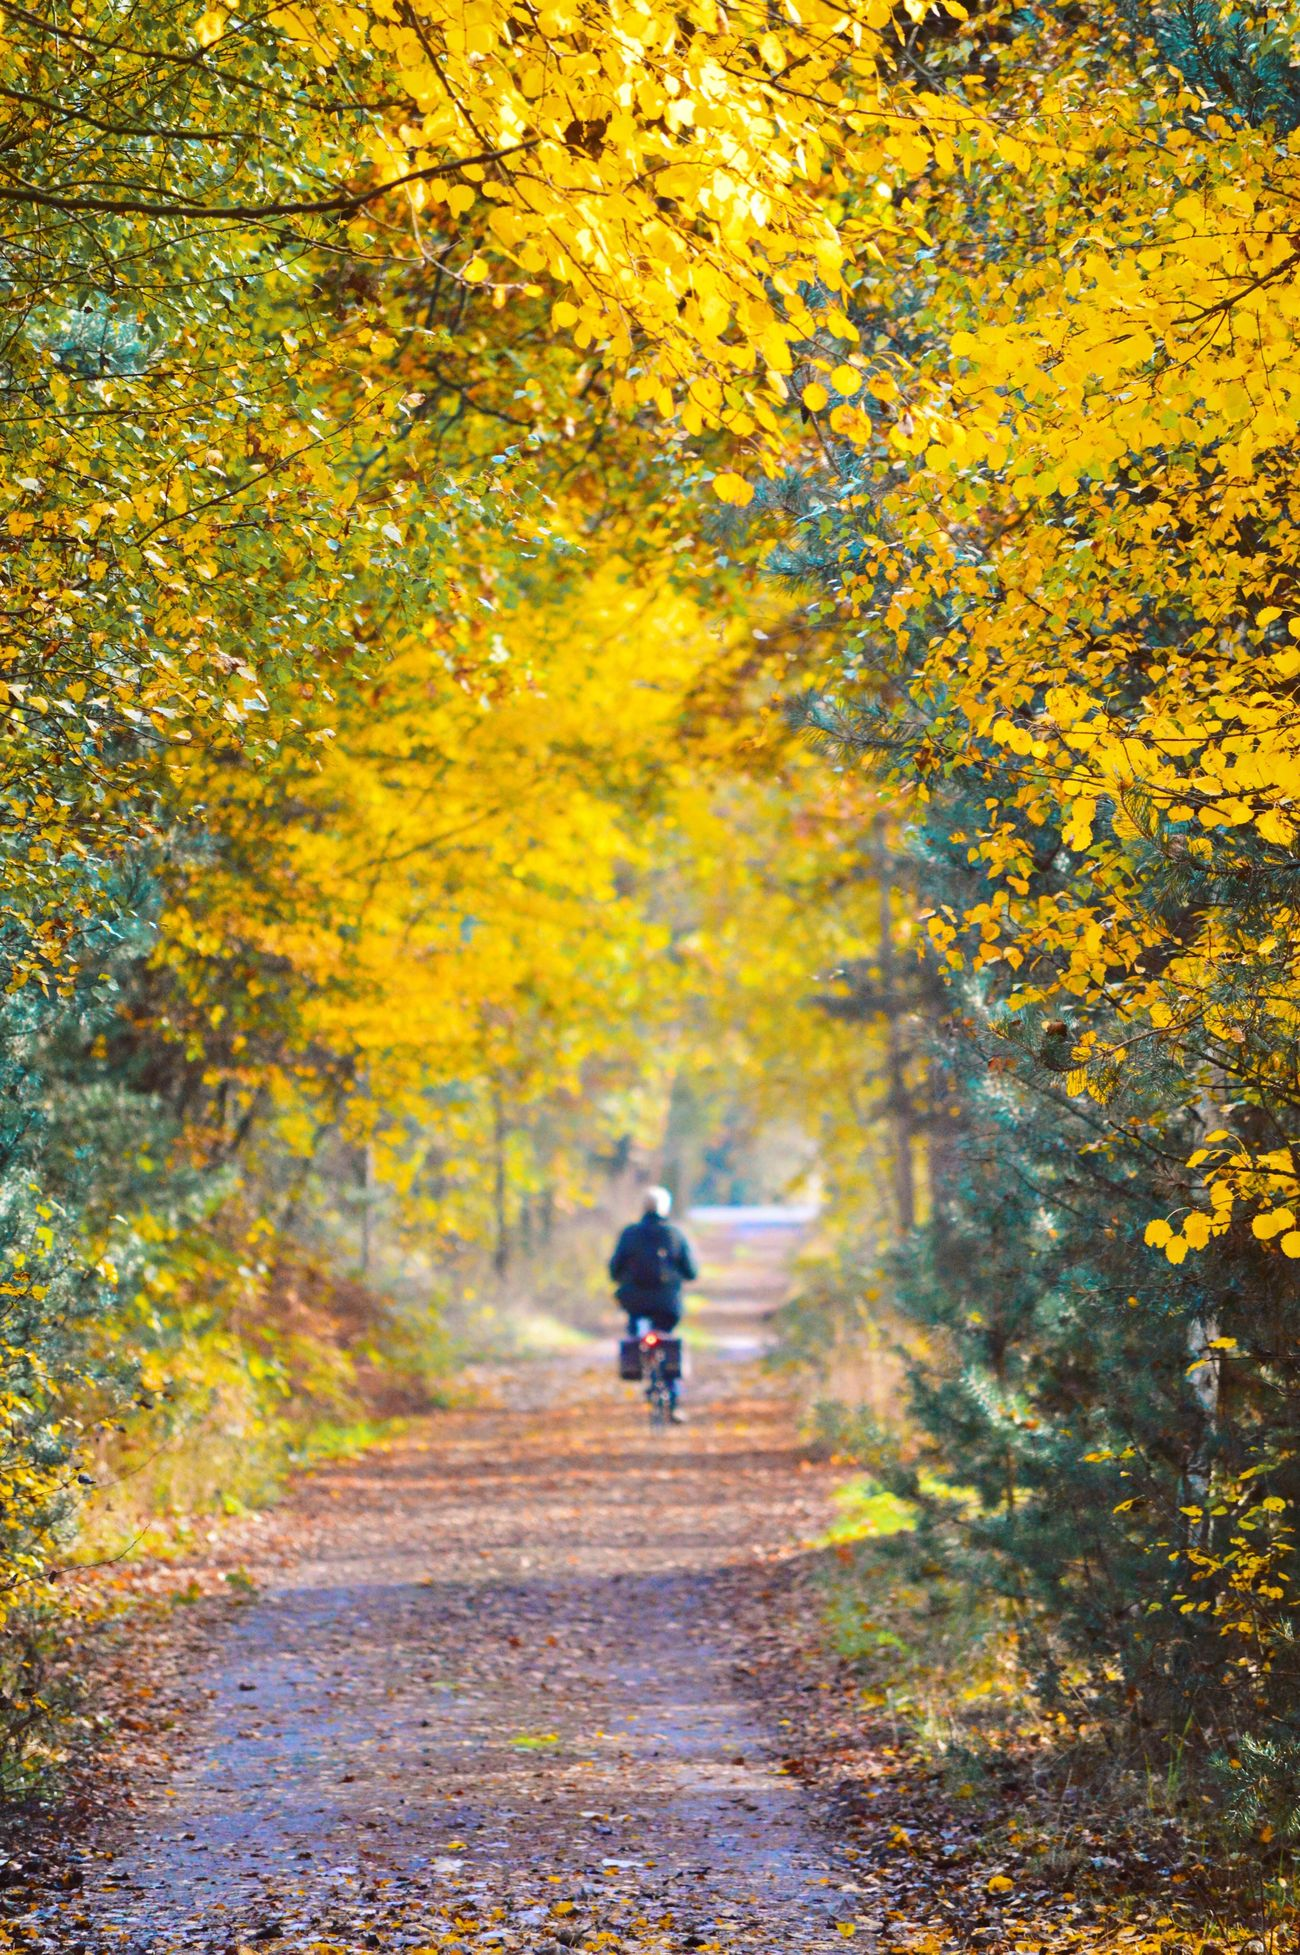 Autumn Autumn Colors Outdoors Rear View Bike Woman Driving Leaf Daydreaming EyeEm Gallery EyeEm Best Shots - Nature Check This Out EyeEm Nature Lover Viewwithmyeyes Luxxxs Beauty In Nature Nature_collection Taking Photos Hello World Walking Around Enjoying The Sun Naturelovers Nature Tranquil Scene Tree